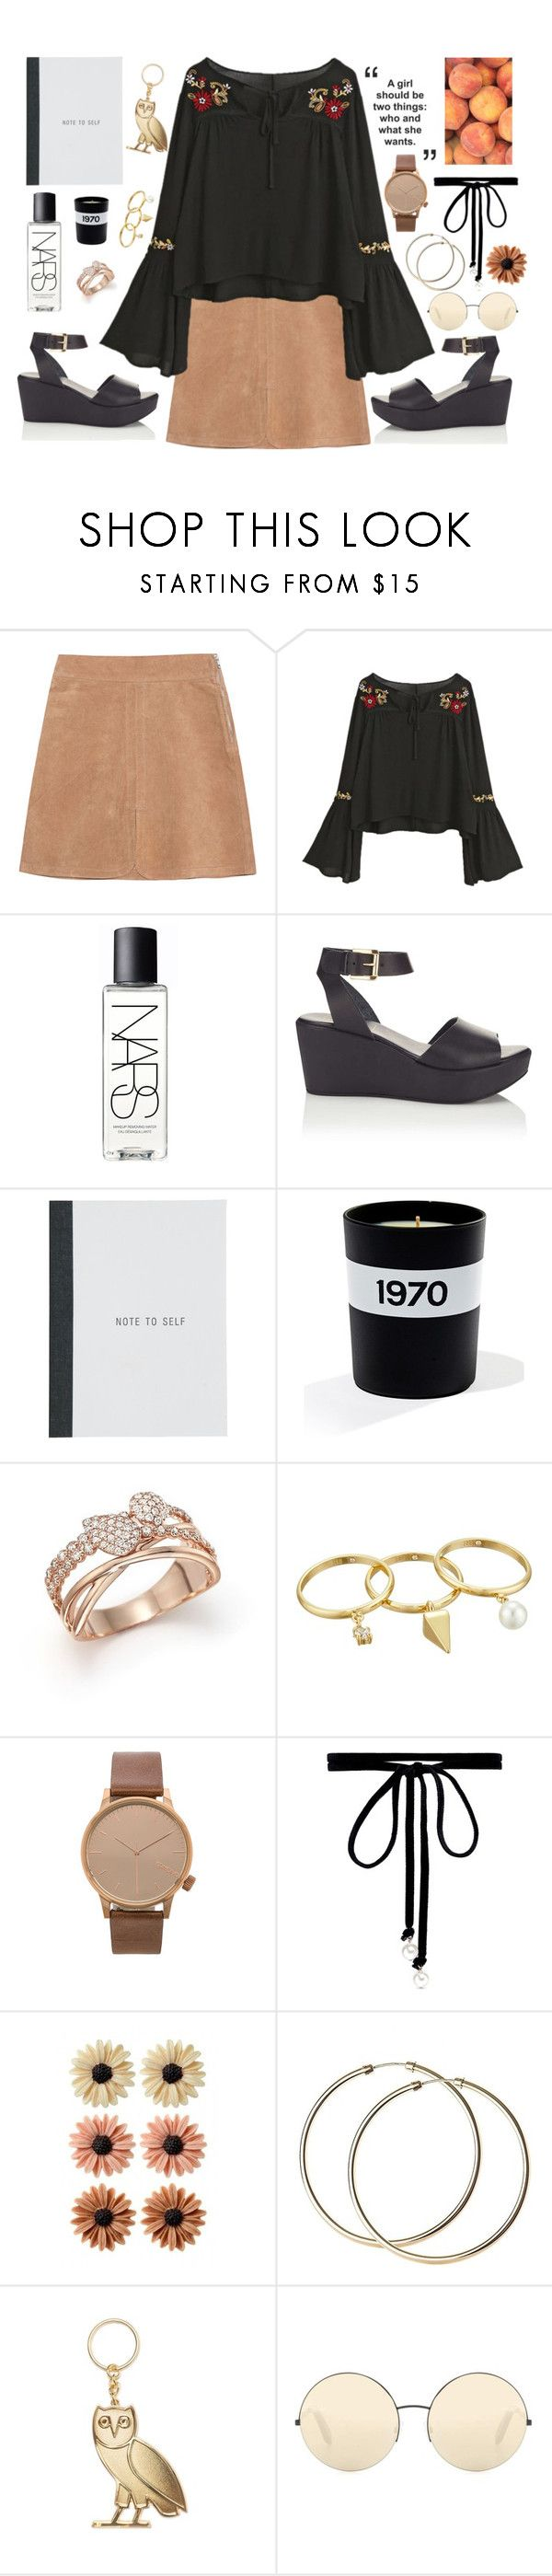 """Ashanti"" by anishagarner ❤ liked on Polyvore featuring See by Chloé, NARS Cosmetics, Miss Selfridge, Bella Freud, Bloomingdale's, Rebecca Minkoff, Komono, Joomi Lim, mae and Victoria Beckham"